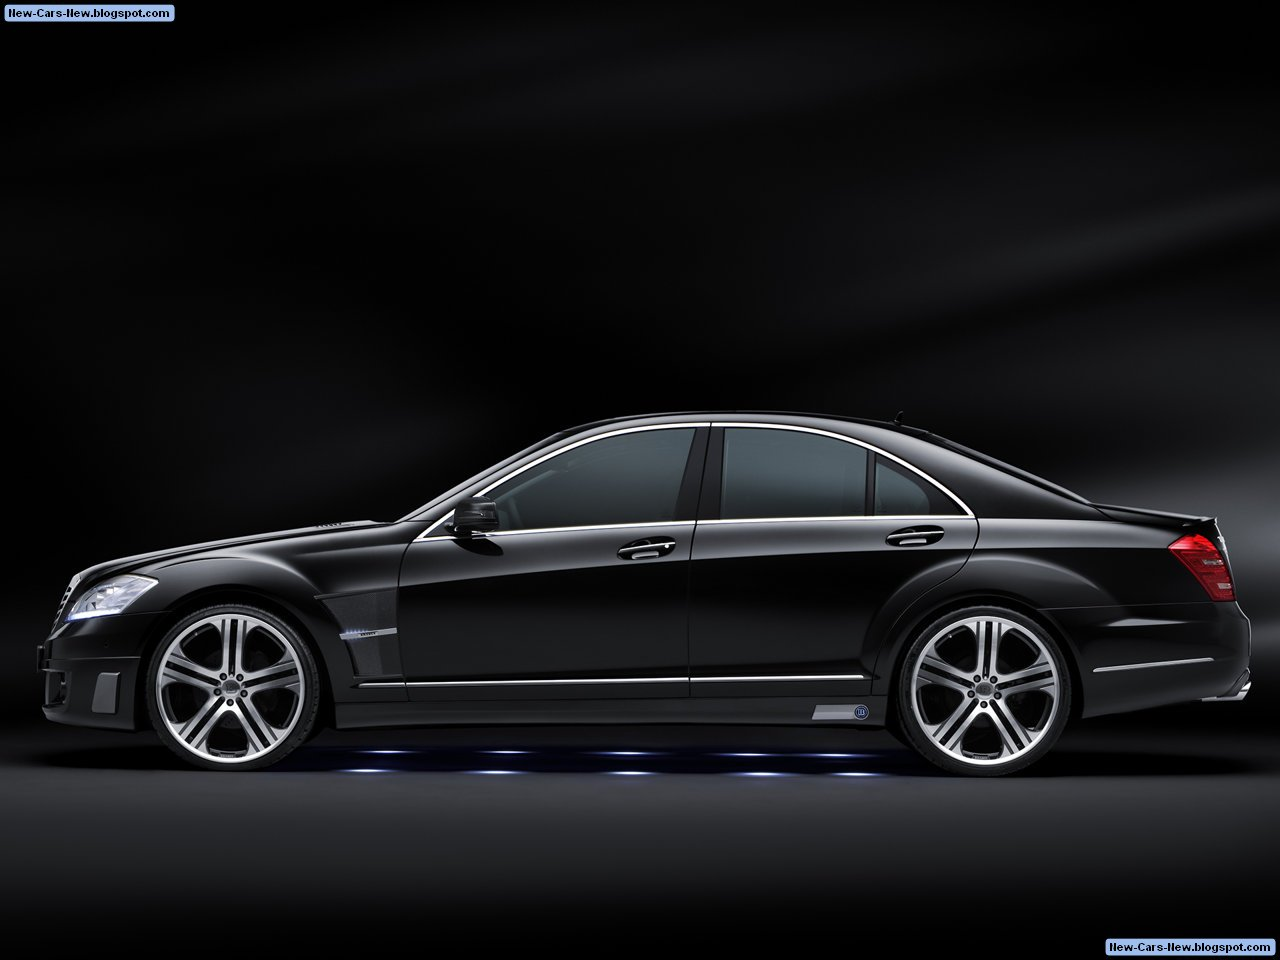 2009 Mercedes Benz R Cl Interior | Free Download Image About All Car ...